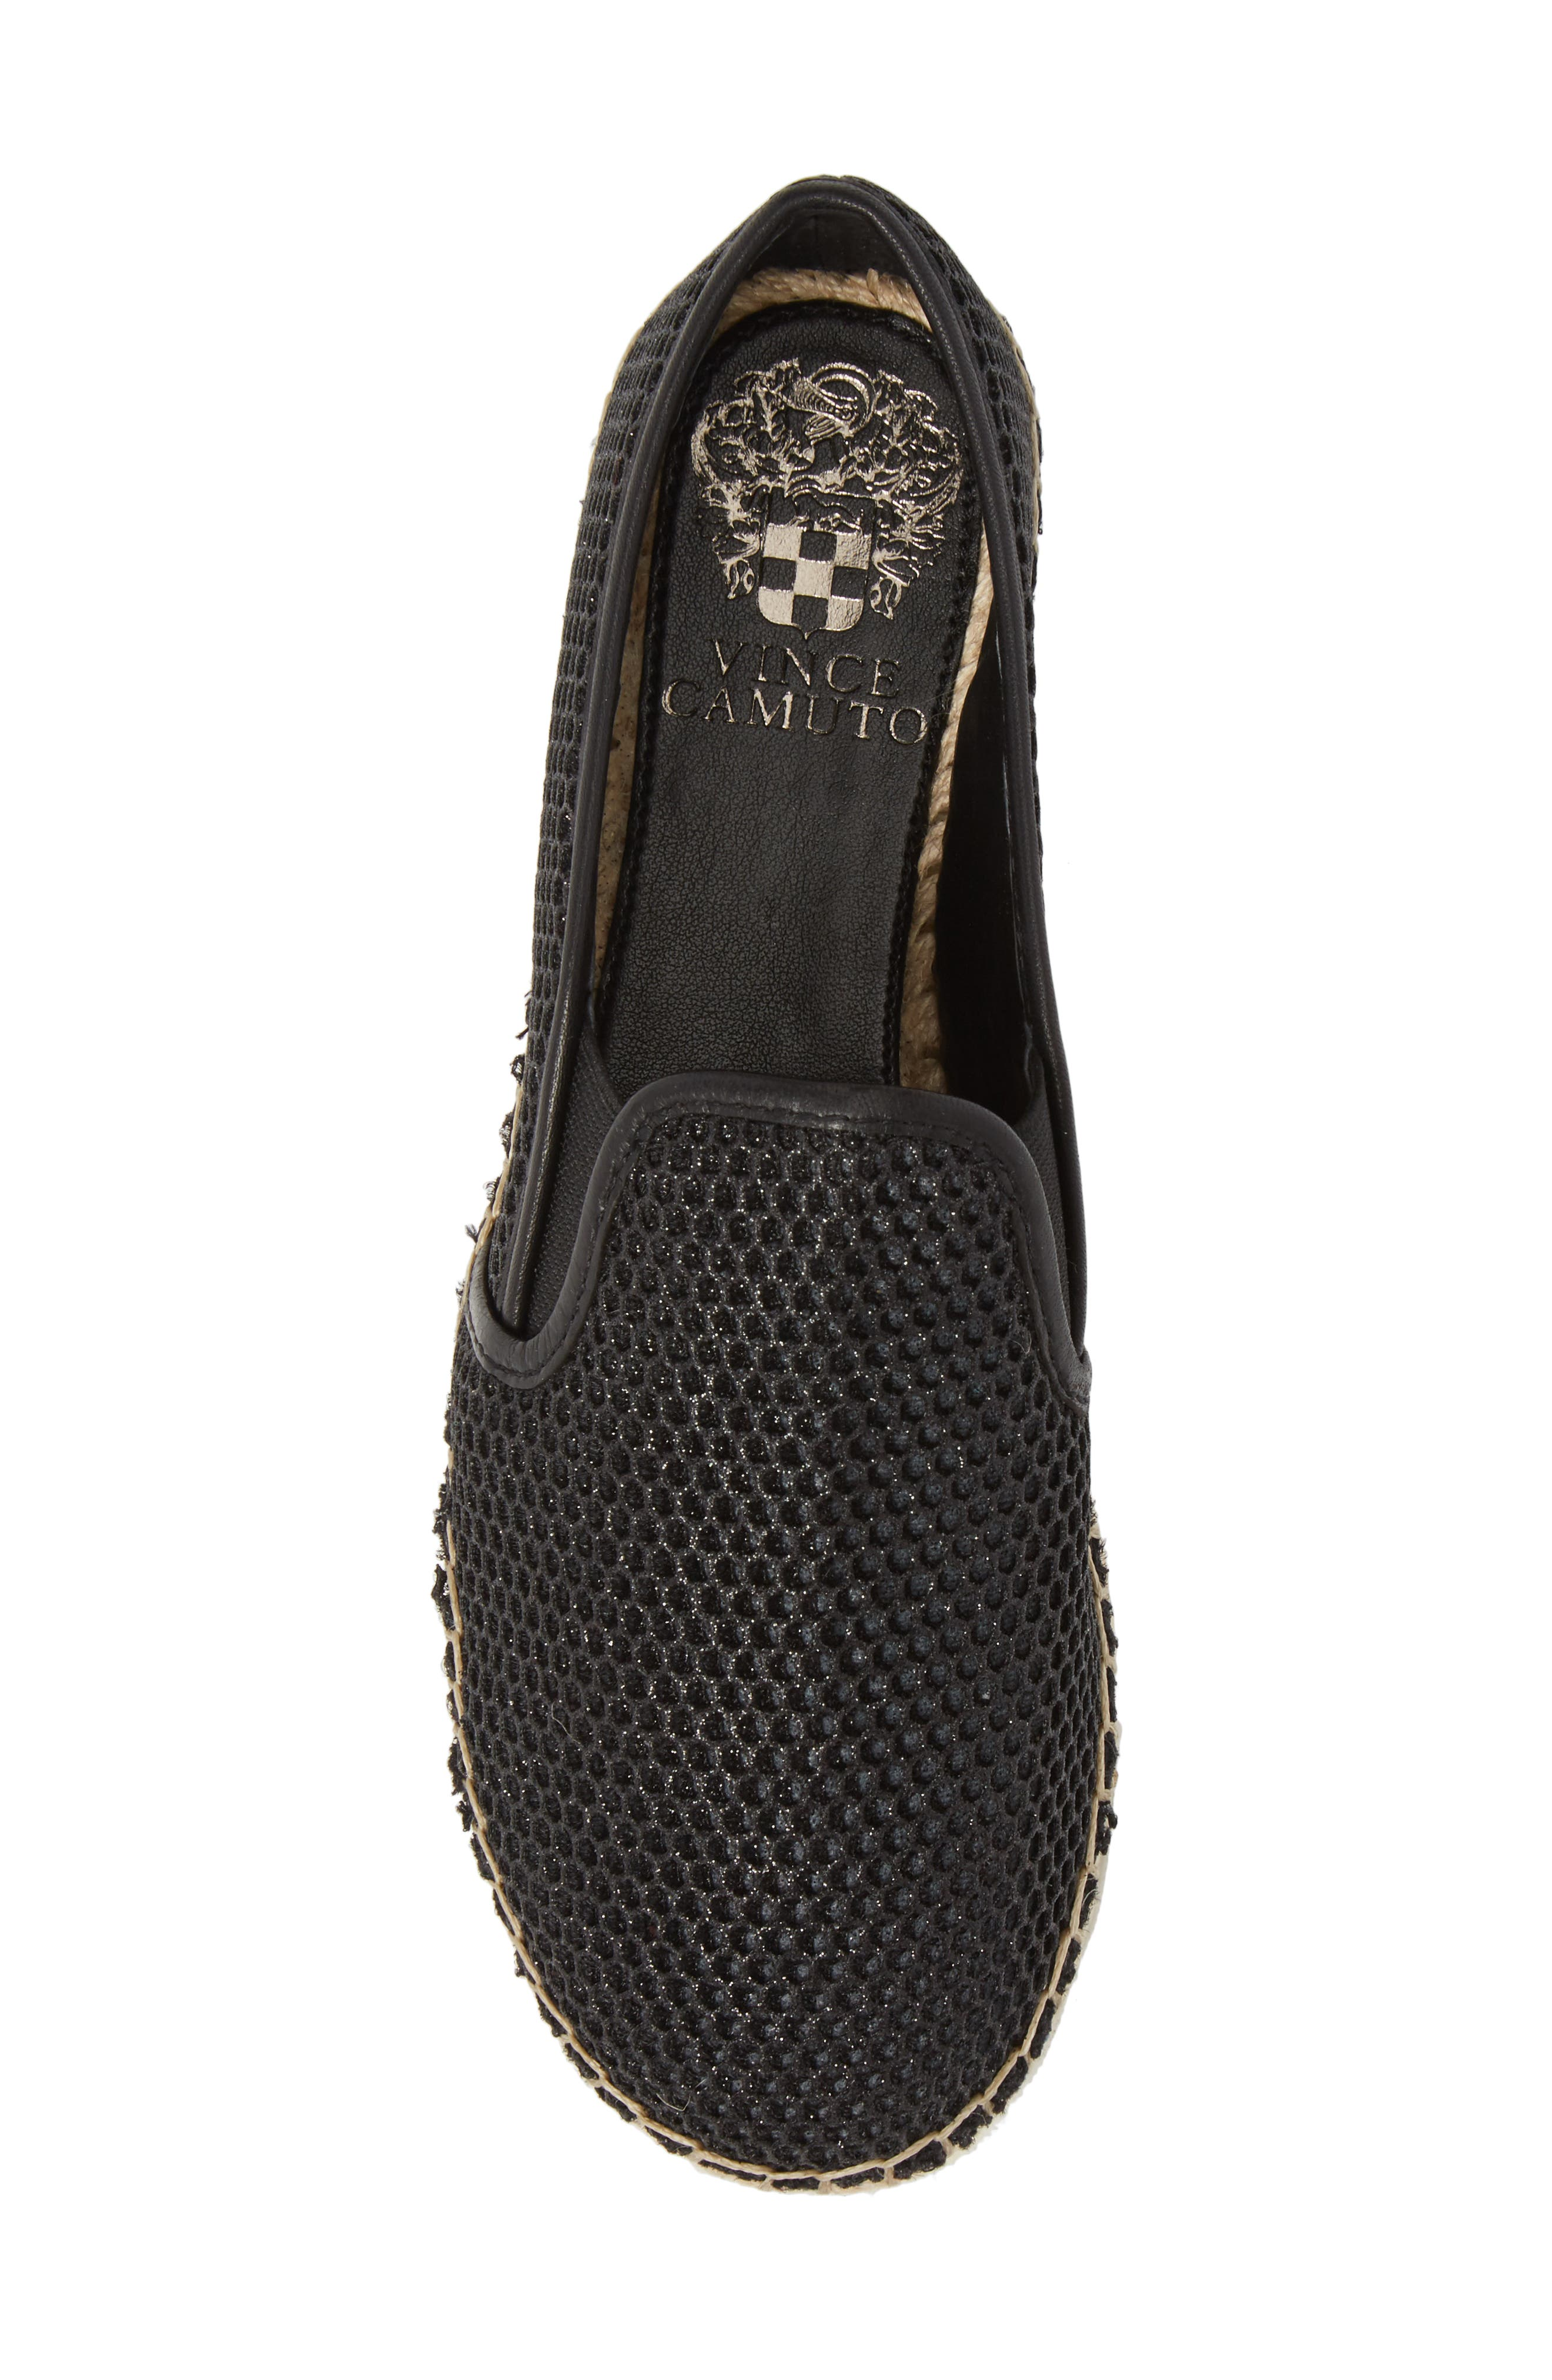 VINCE CAMUTO, Tambie Slip-On Sneaker, Alternate thumbnail 5, color, 001